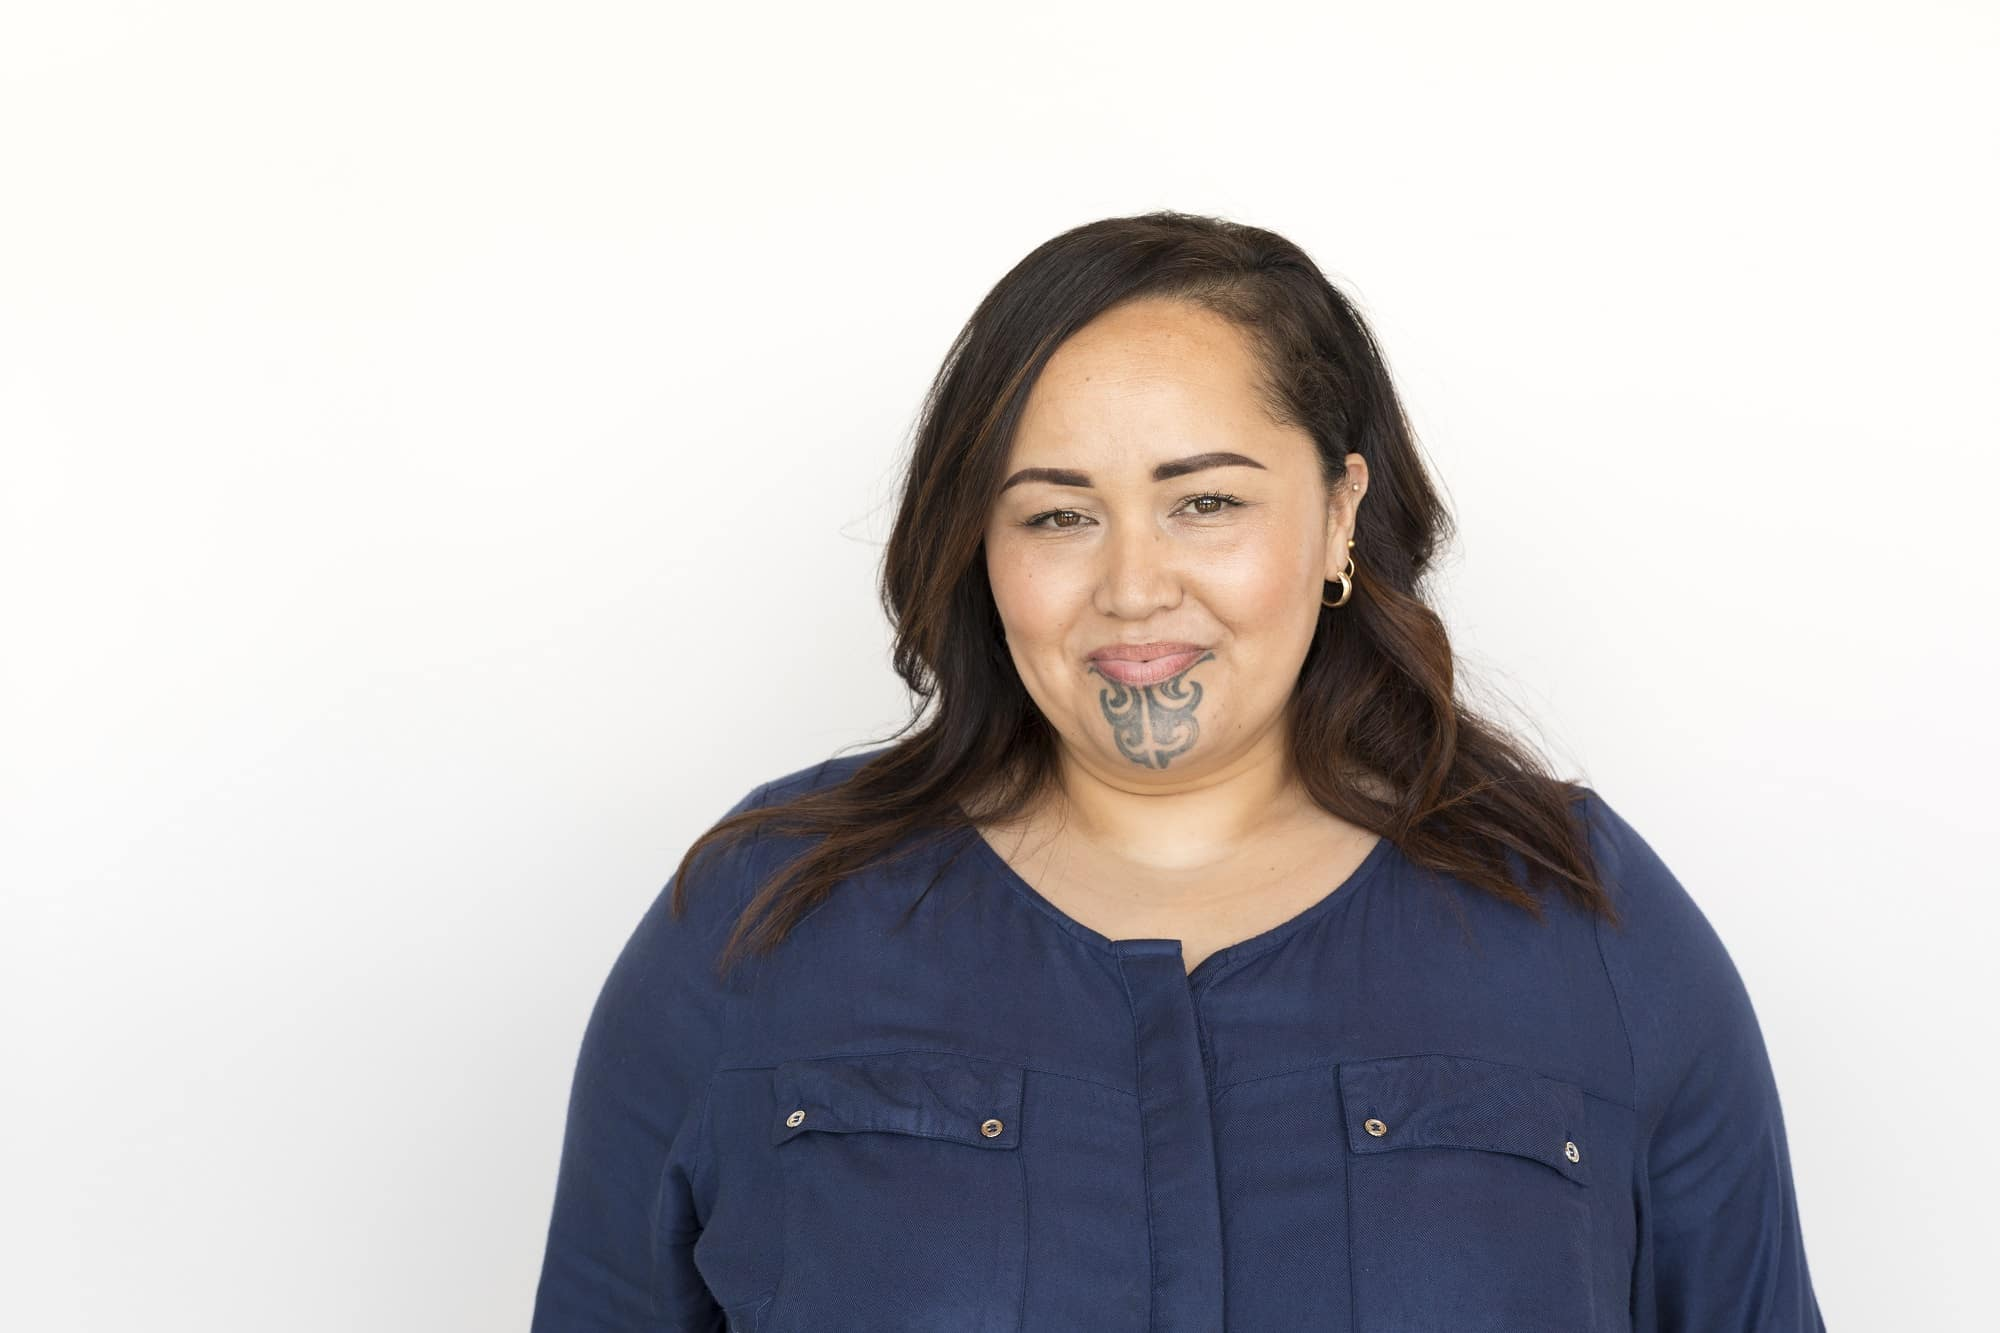 Portrait on a White Background of a Maori Woman With a Face Tattoo or Moko